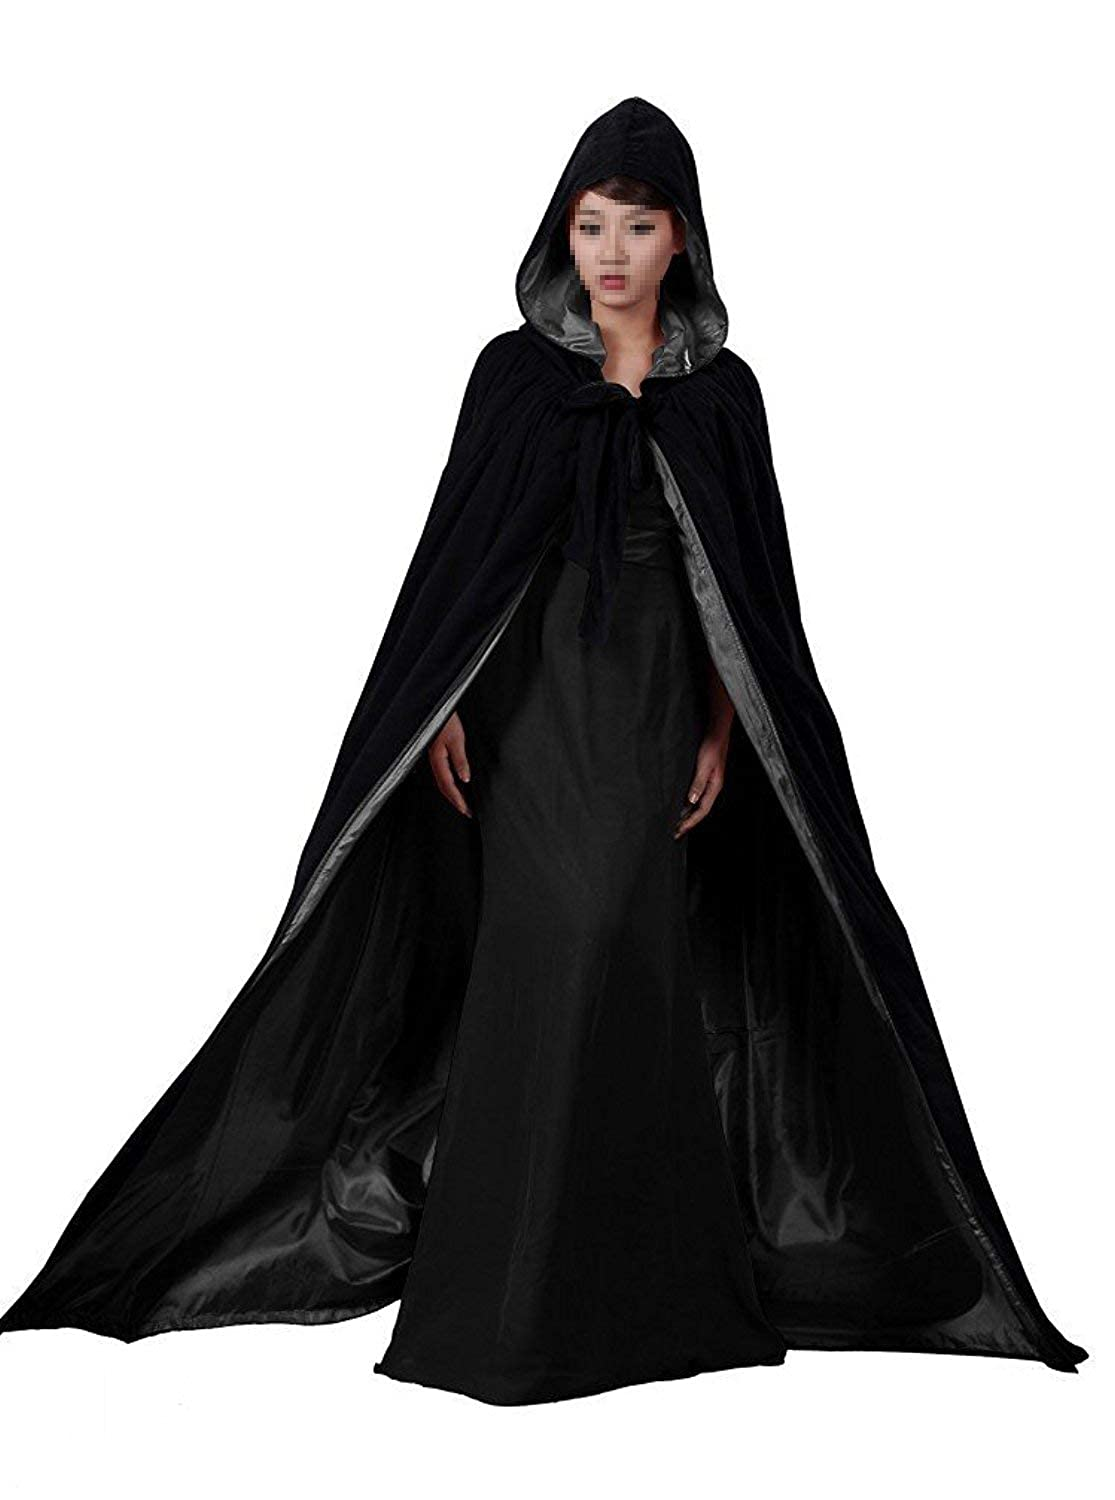 57470f6aa83d4 Amazon.com  Special Bridal Long Unisex Velvet Capes Adult Halloween  Christmas Cosplay Costume Cloaks  Clothing